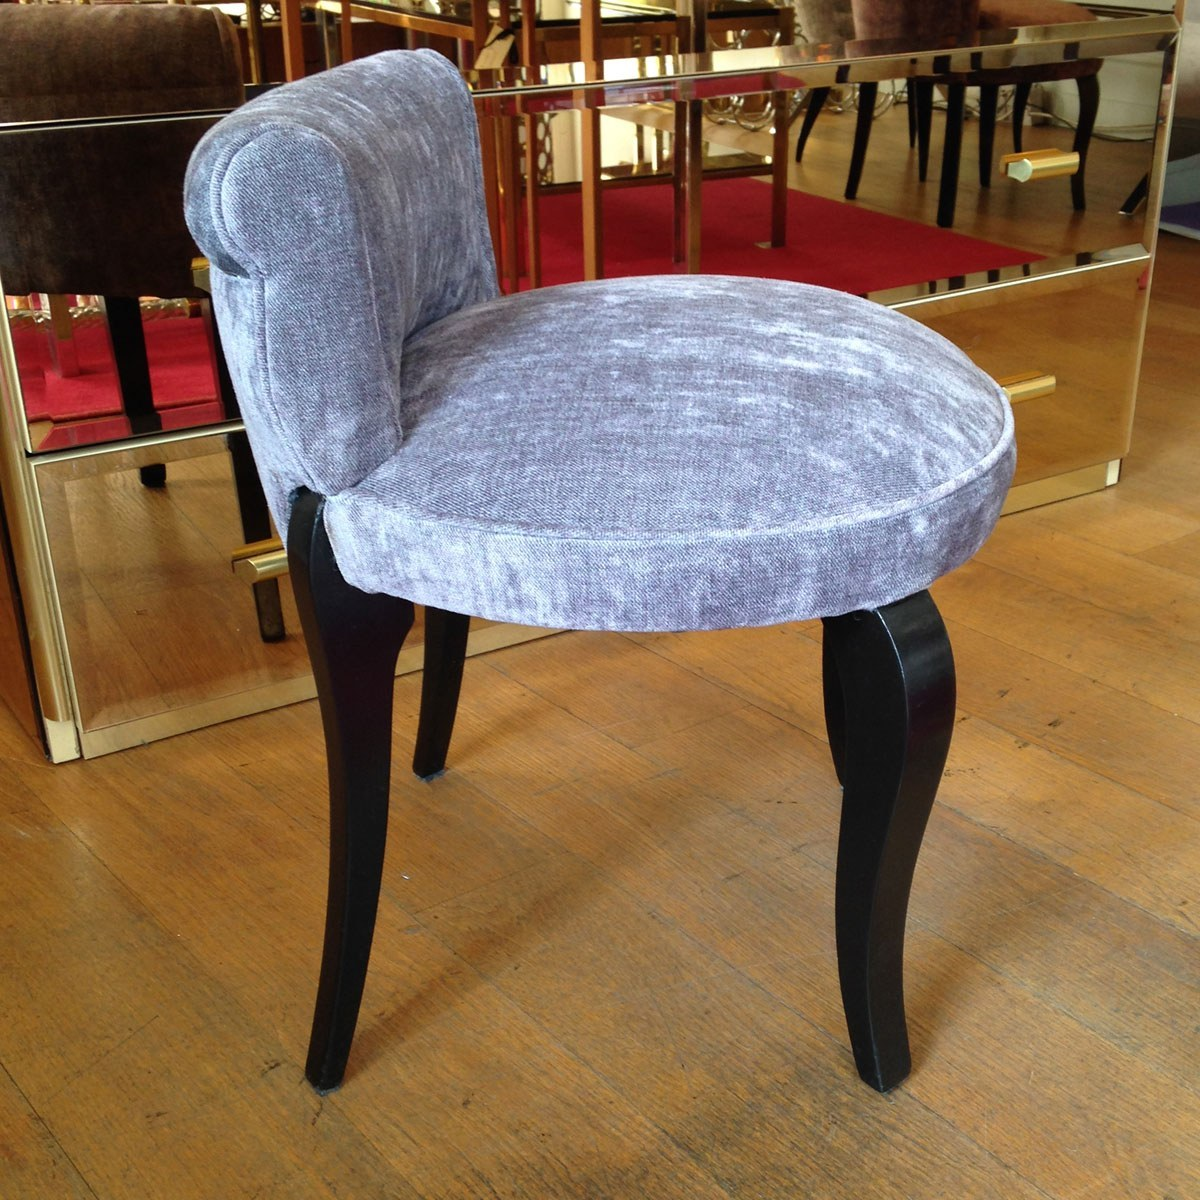 Valerie Wade Fs027 Low Back Upholstered Seat 04